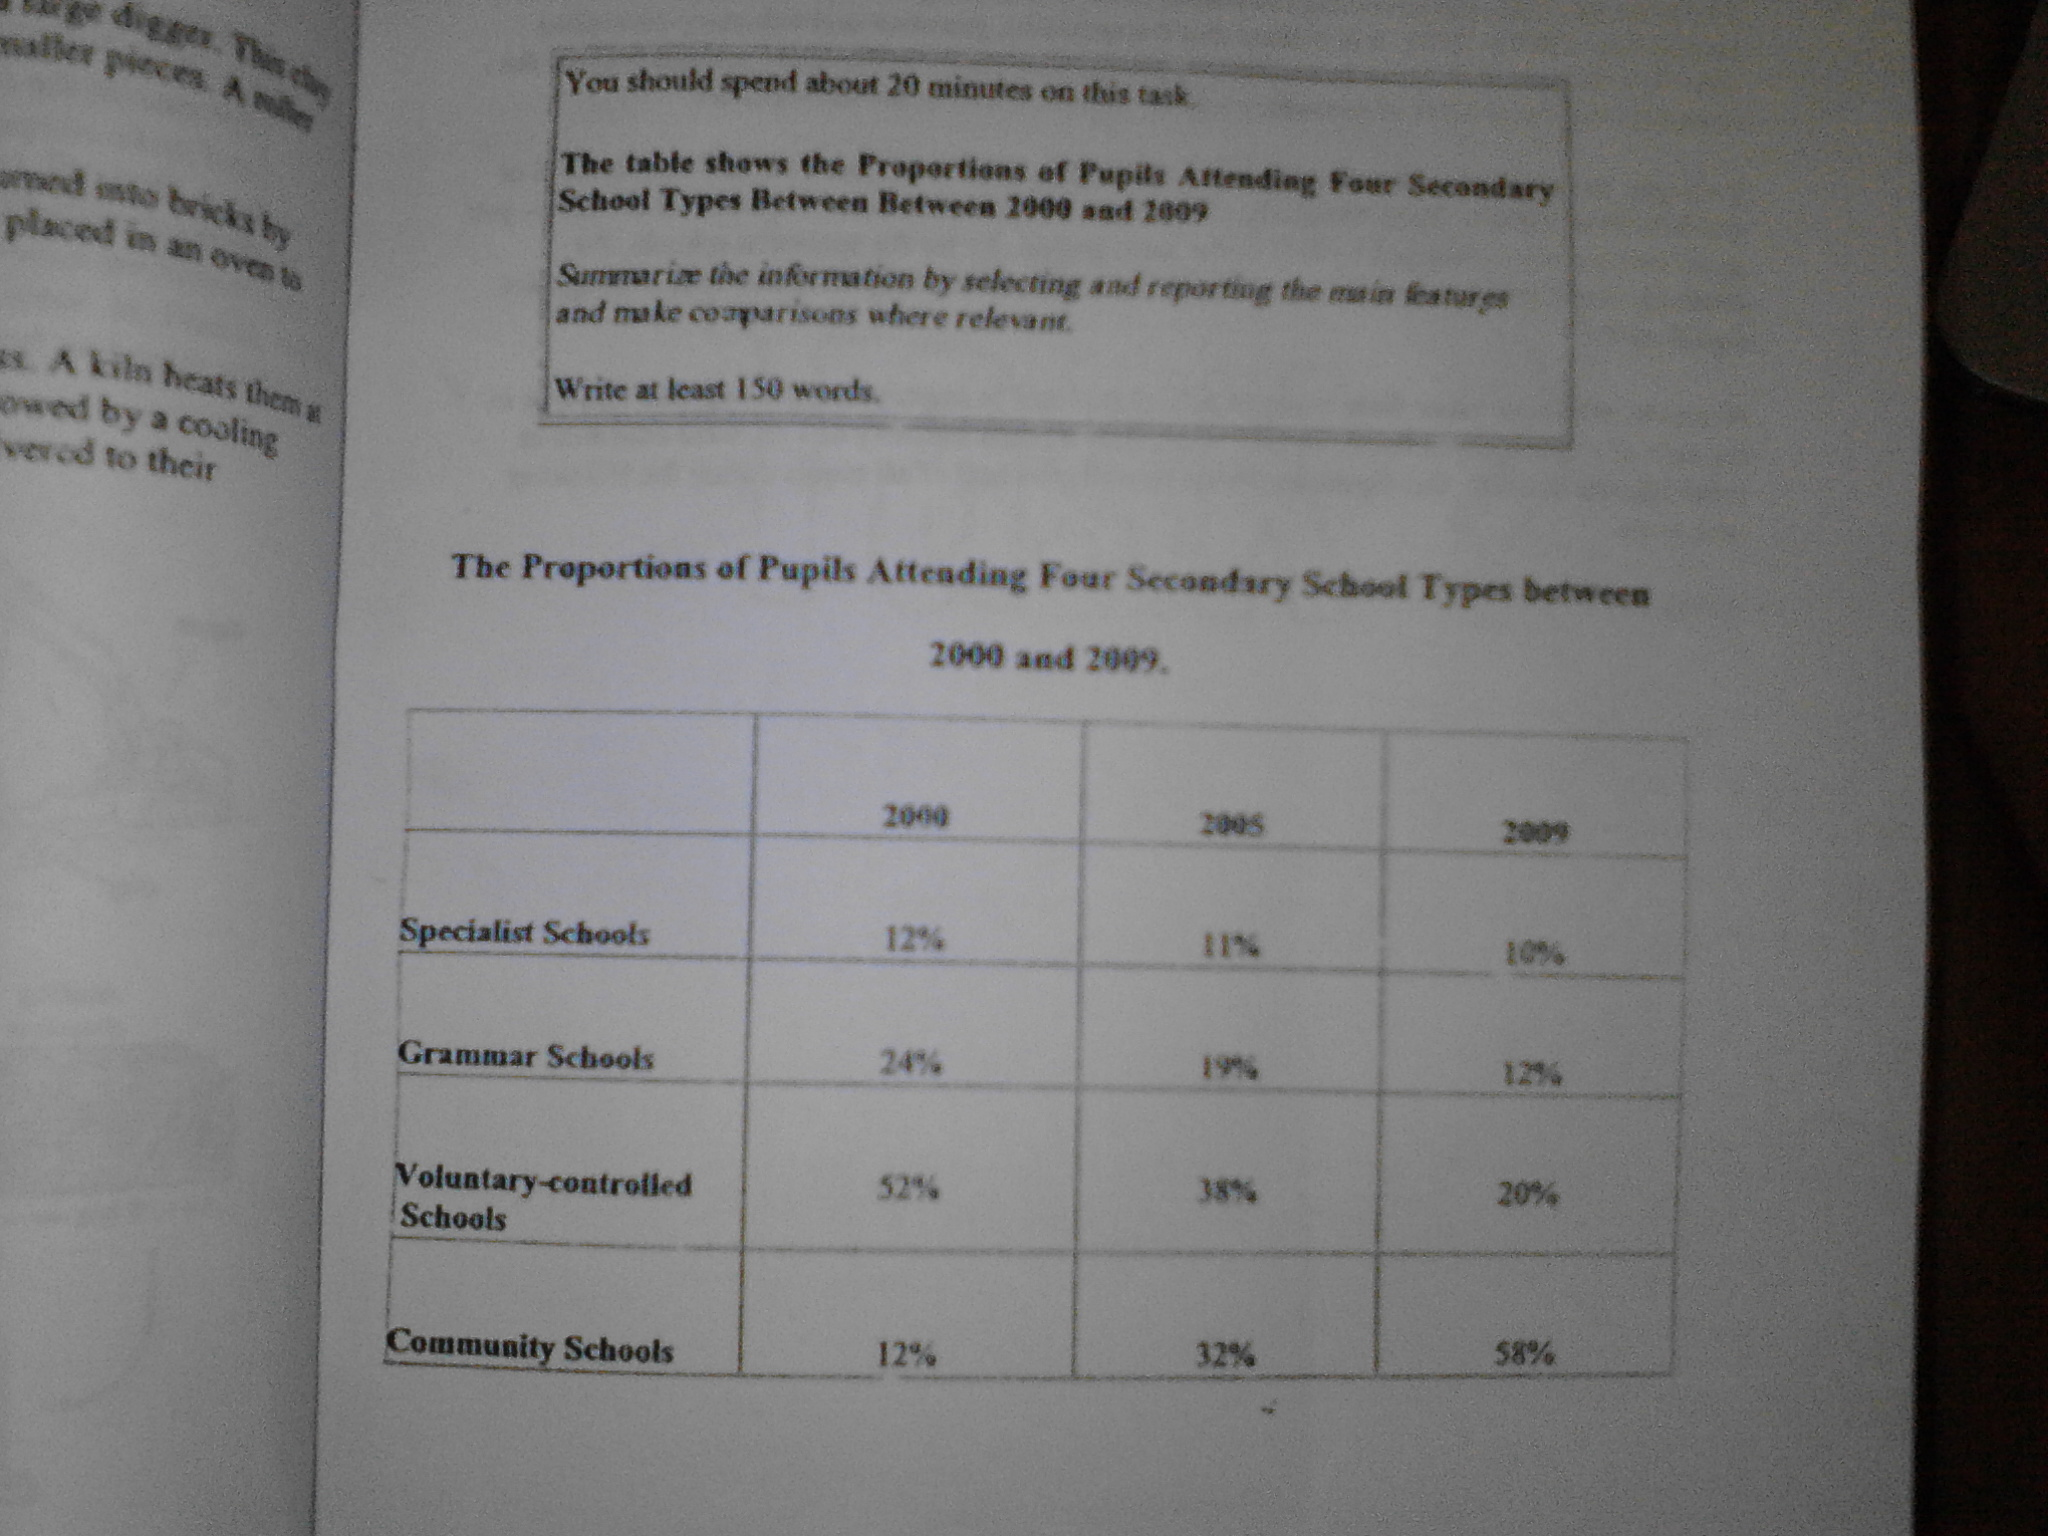 the table shows the proportions of pupils attending four secondary essay topics the table shows the proportions of pupils attending four secondary school types between 2000 and 2009